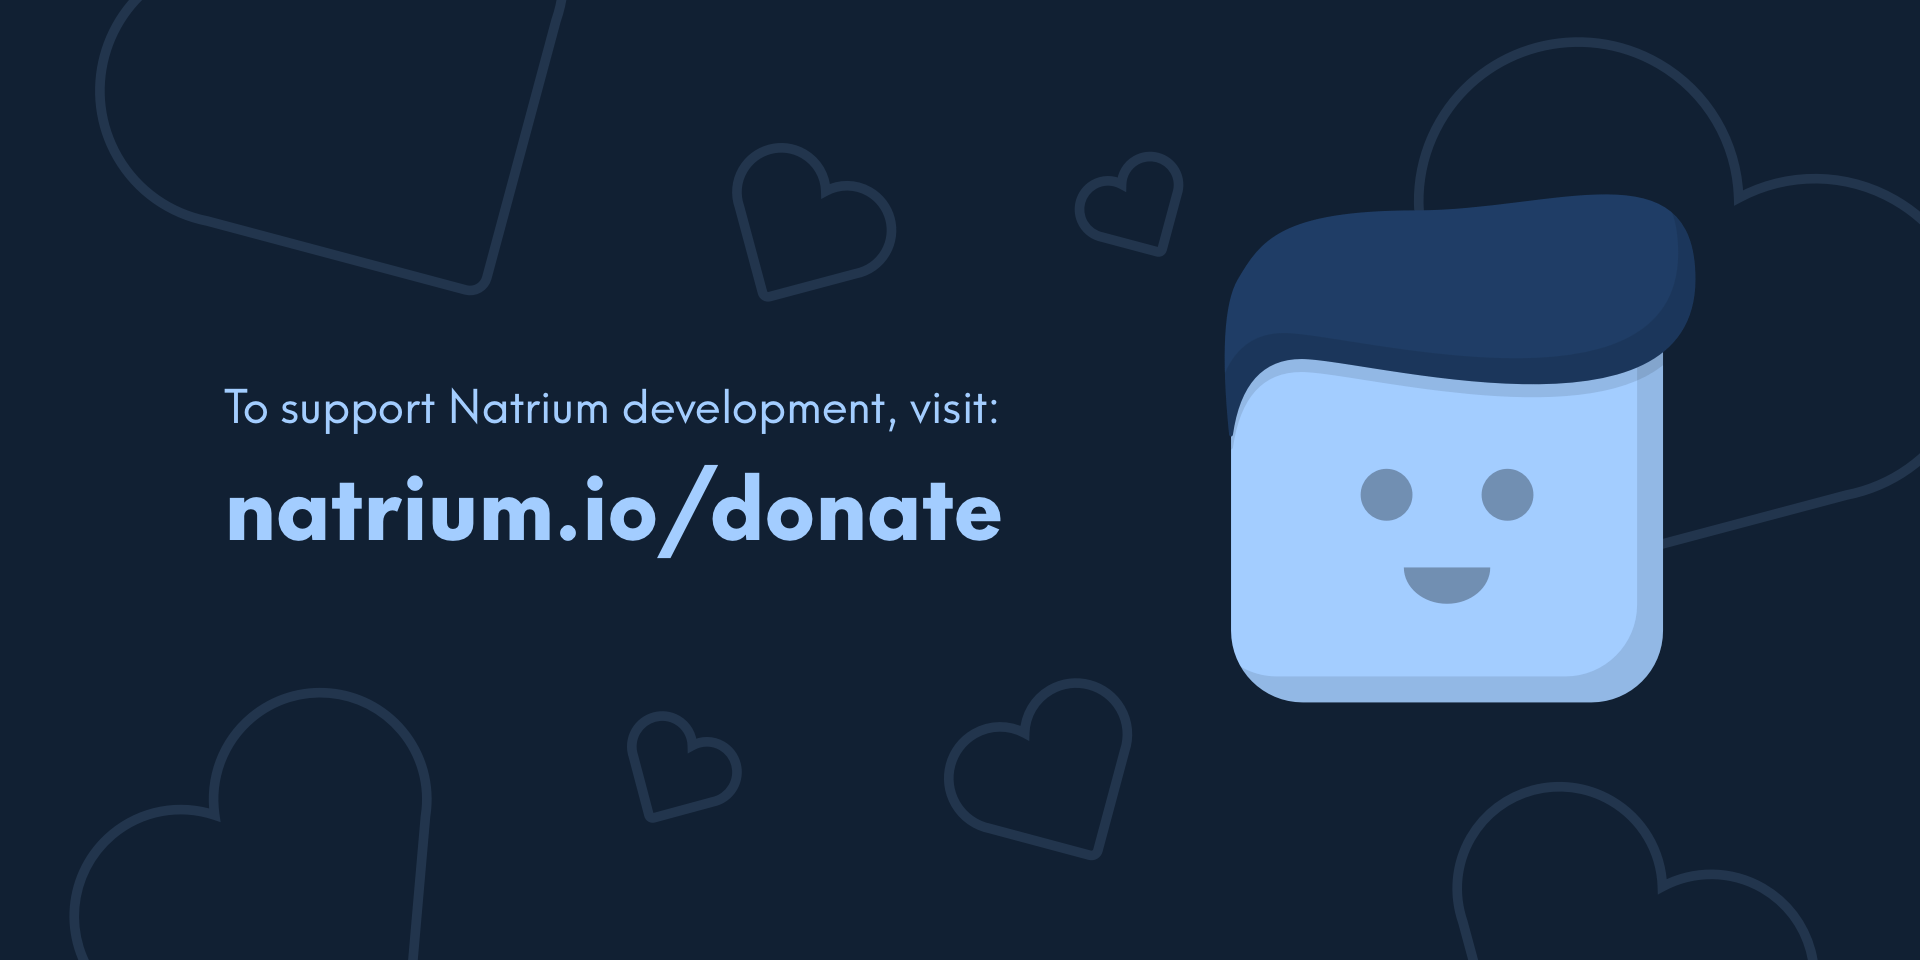 natrium.io/donate